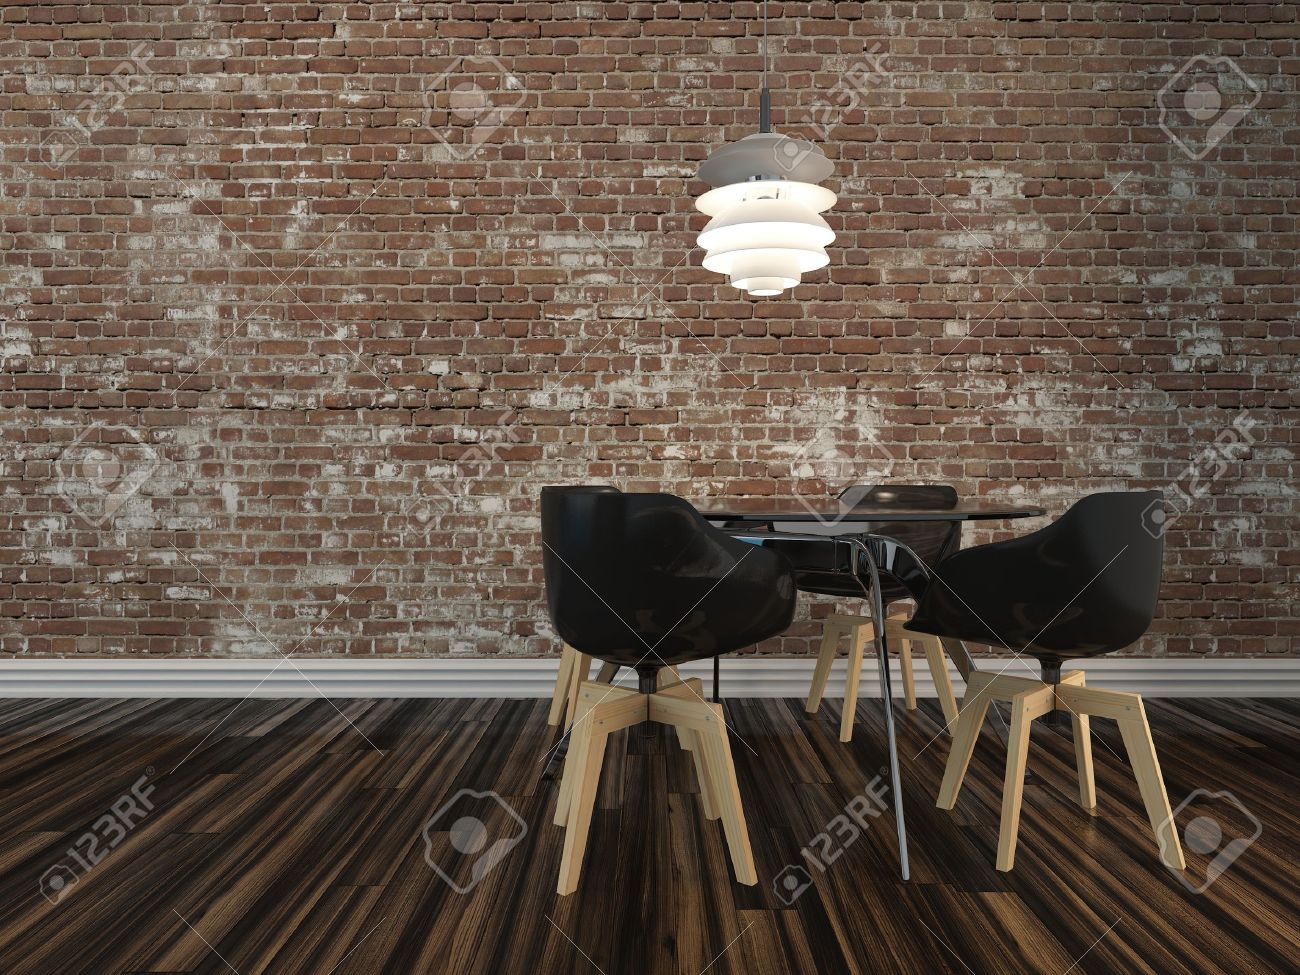 Small Modern Dining Table And Four Chairs On A Wooden Parquet Stock Photo Picture And Royalty Free Image Image 29559263